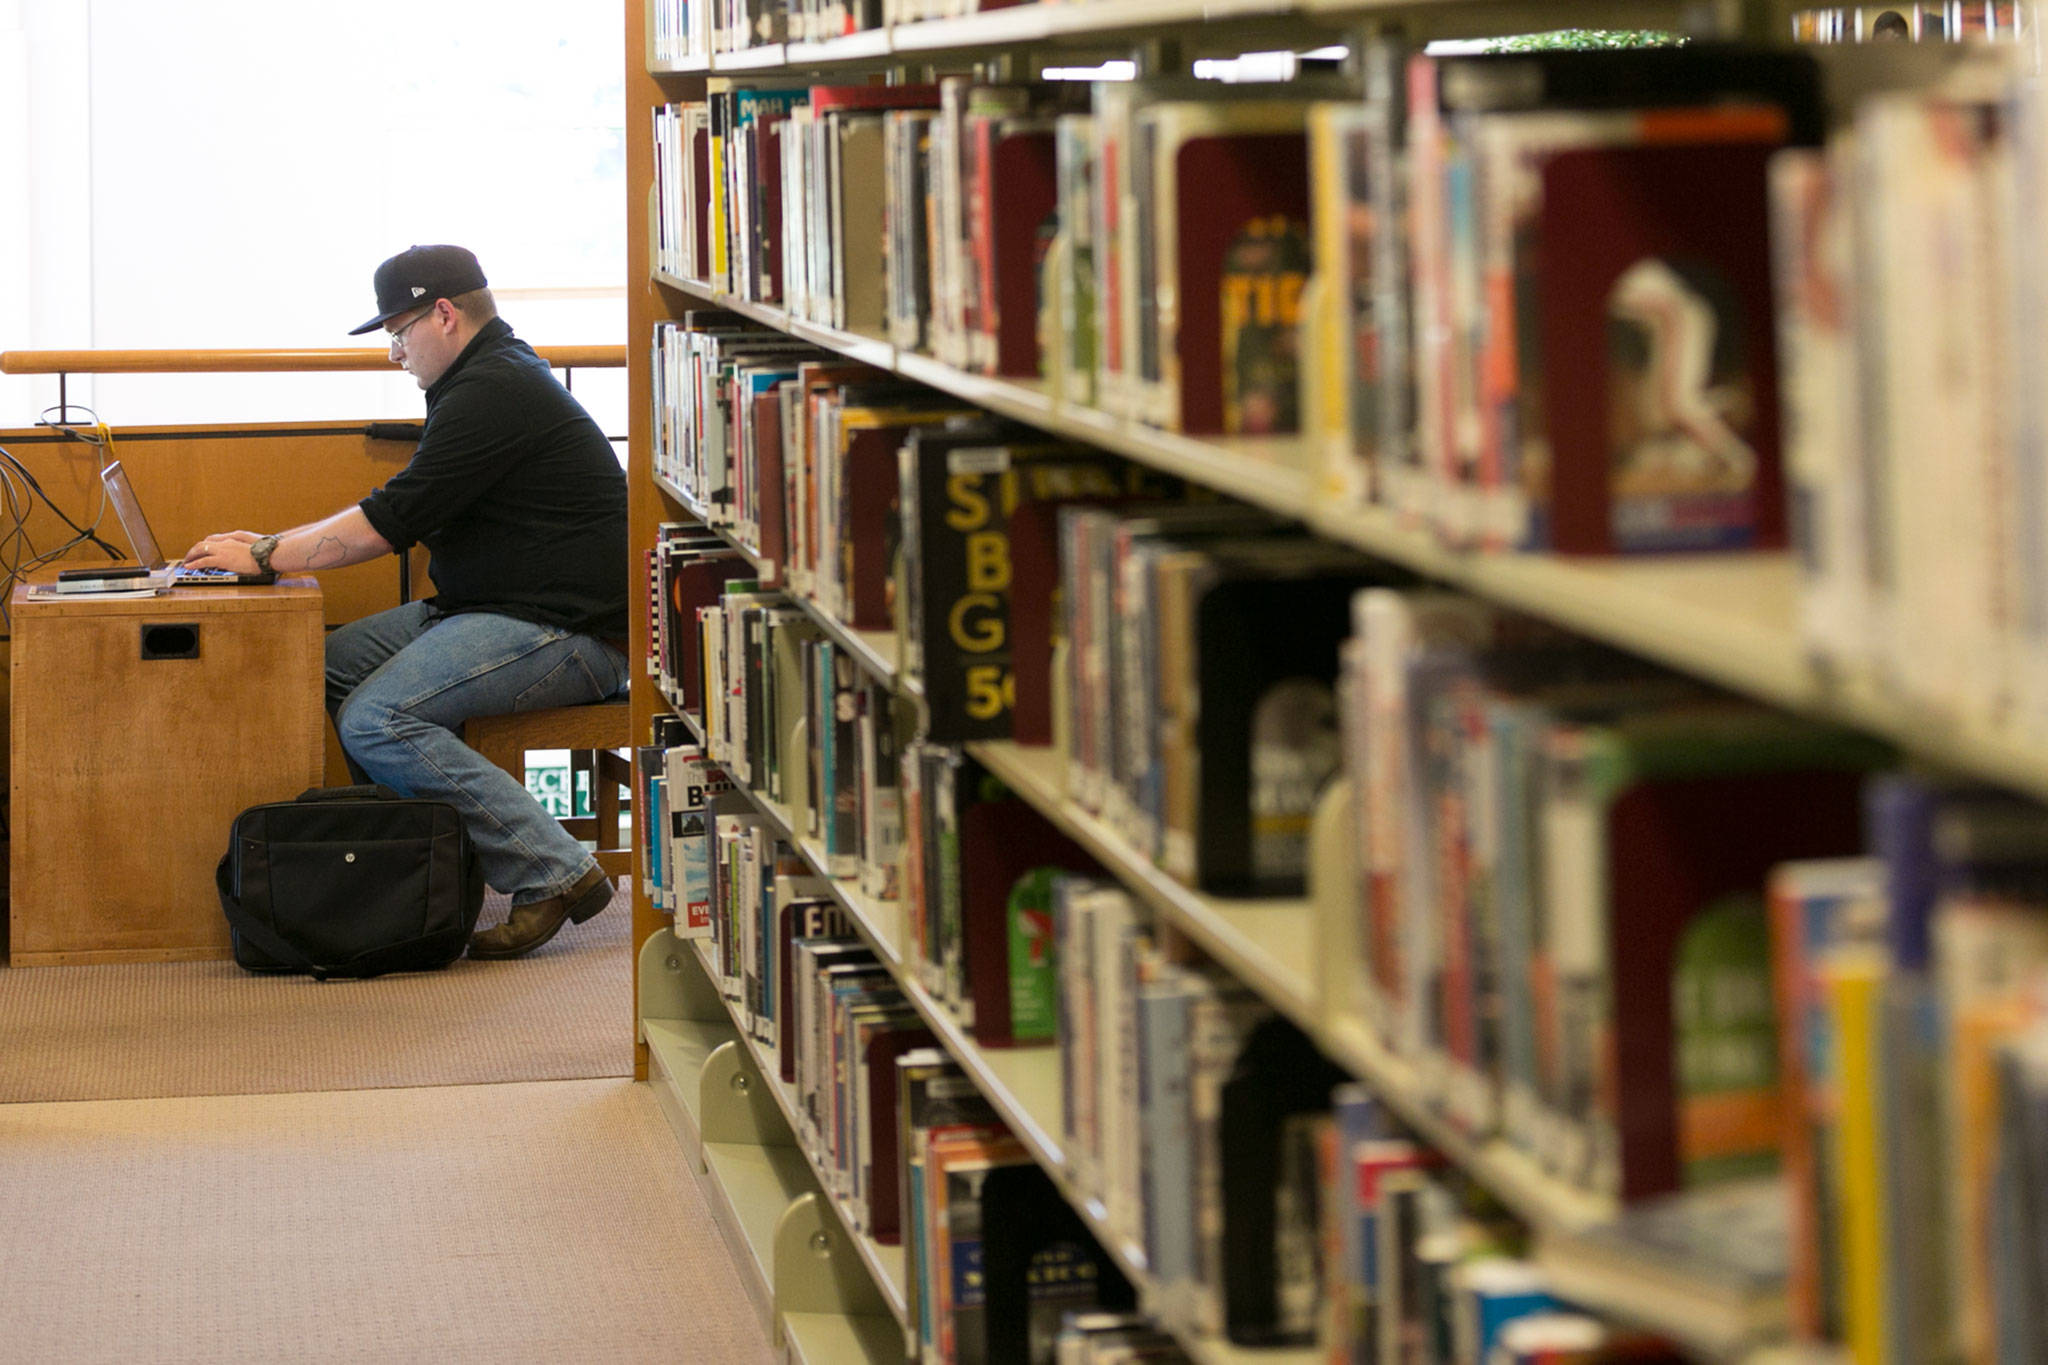 Eric Lancaster of Everett is participating in National Novel Writing Month in November. (Kevin Clark / The Herald)